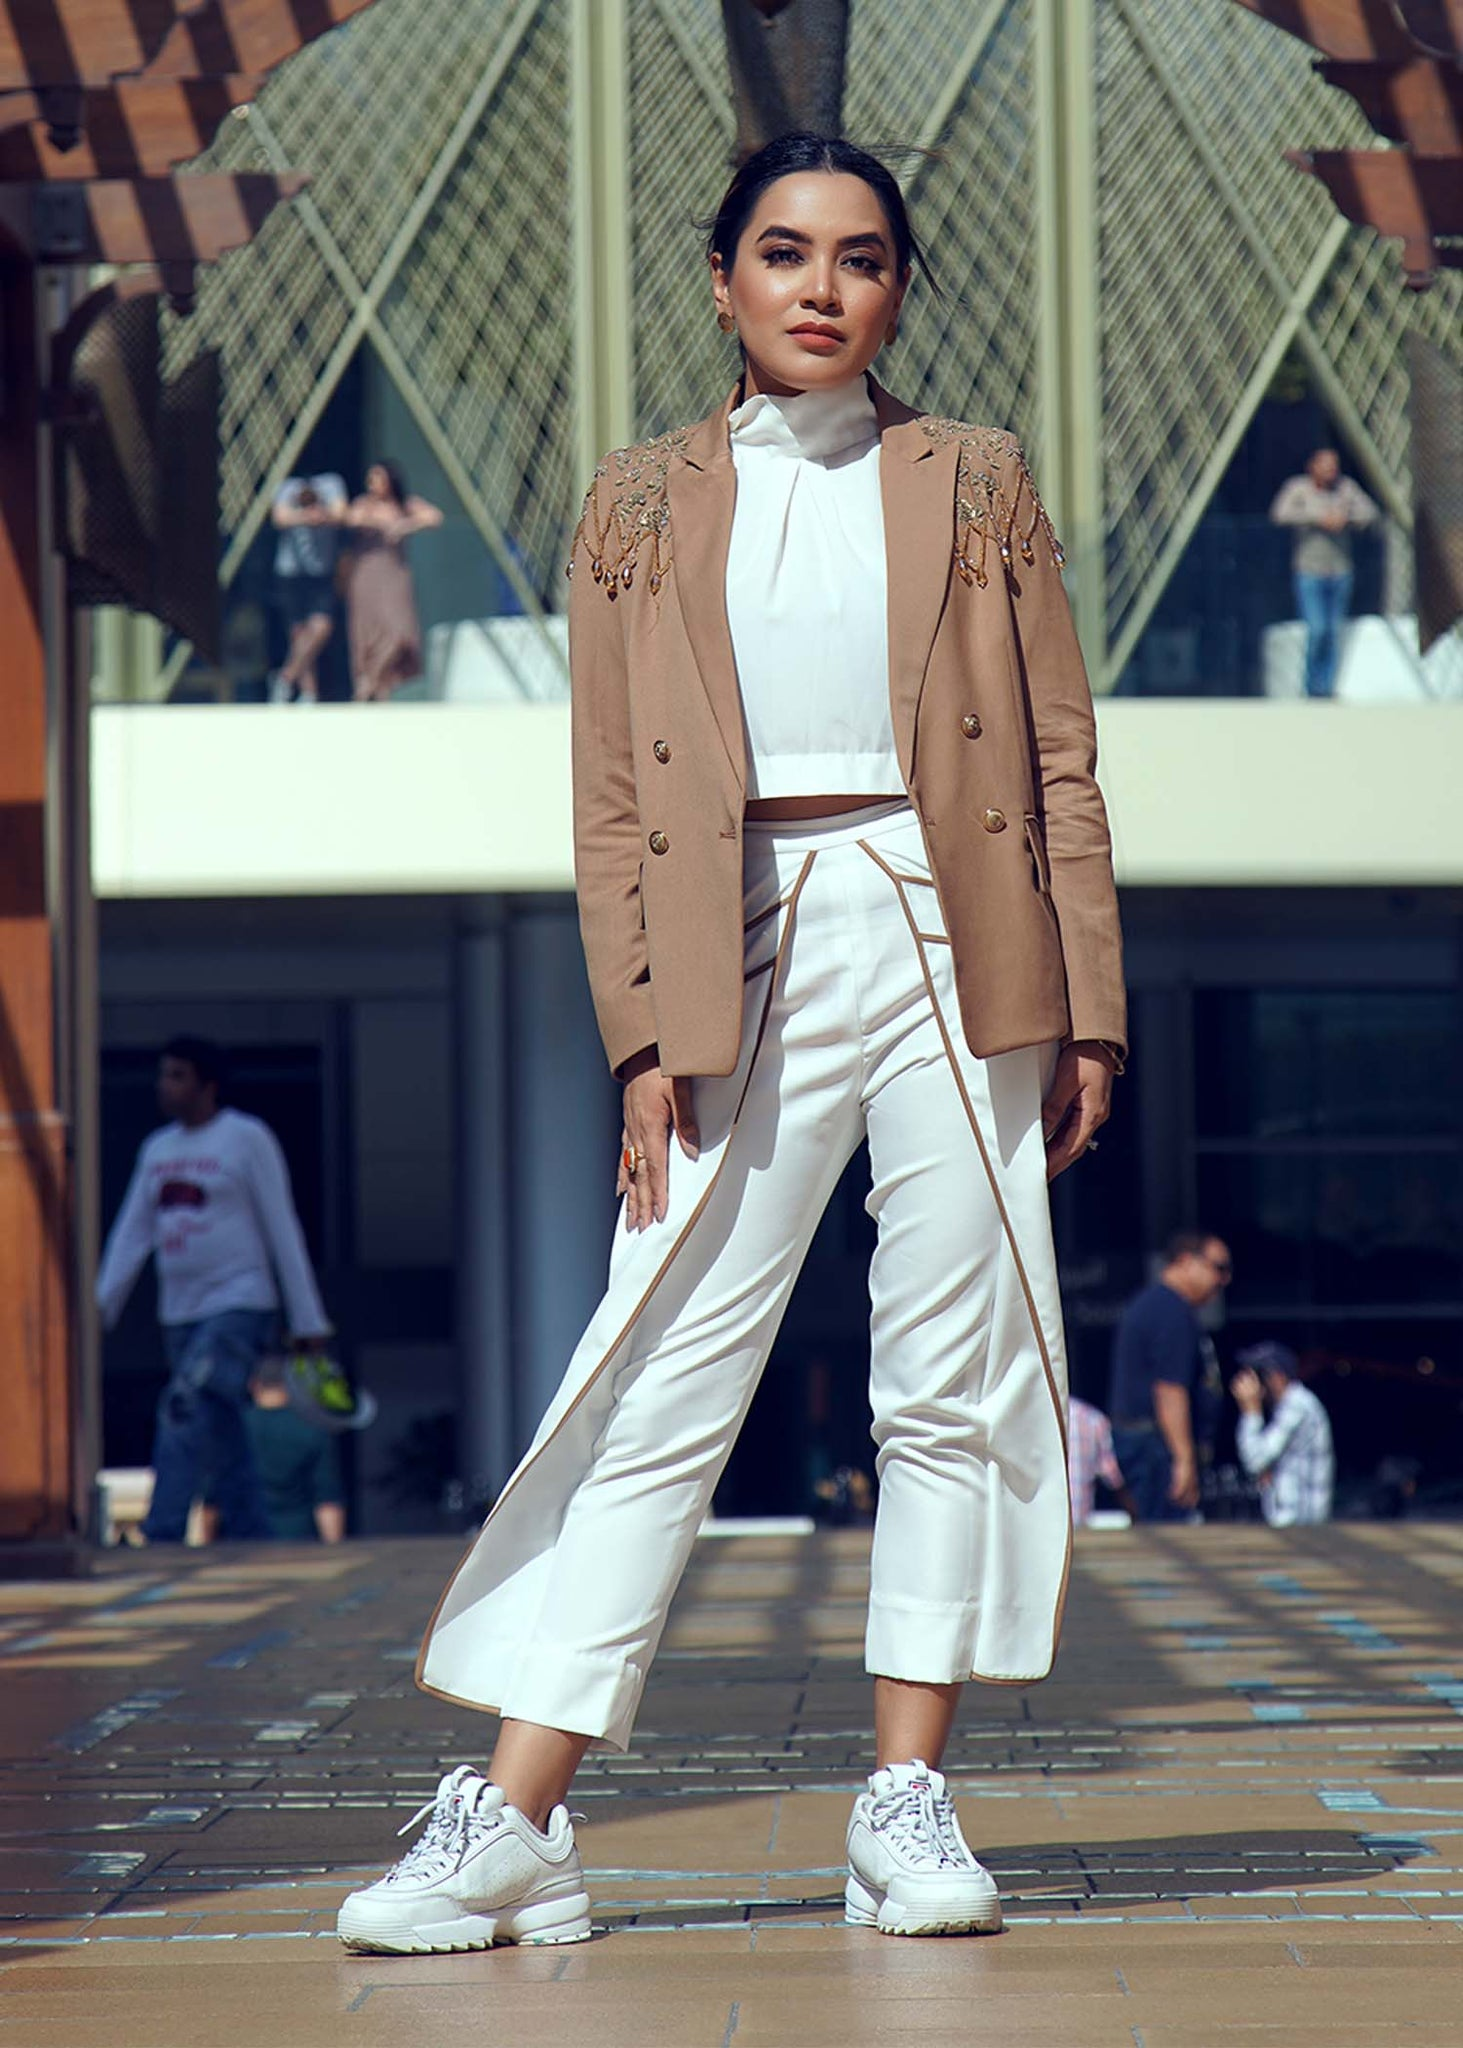 Embellished Blazer with White Pants with Brown Detailing and White Halter Top